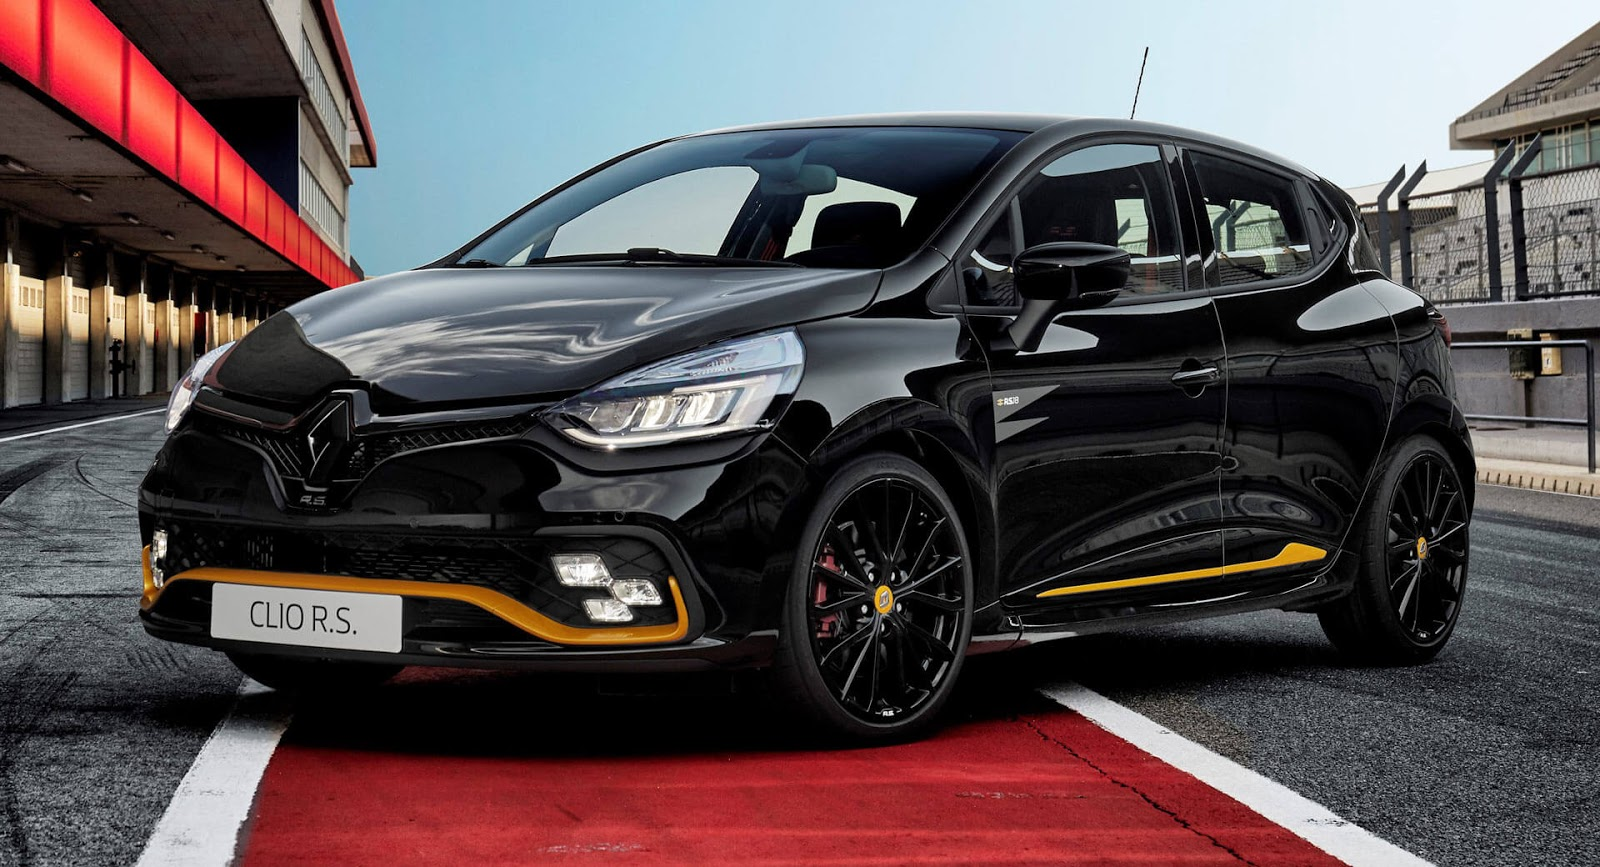 renault clio r s 18 adds f1 theme for special edition autoevolution. Black Bedroom Furniture Sets. Home Design Ideas